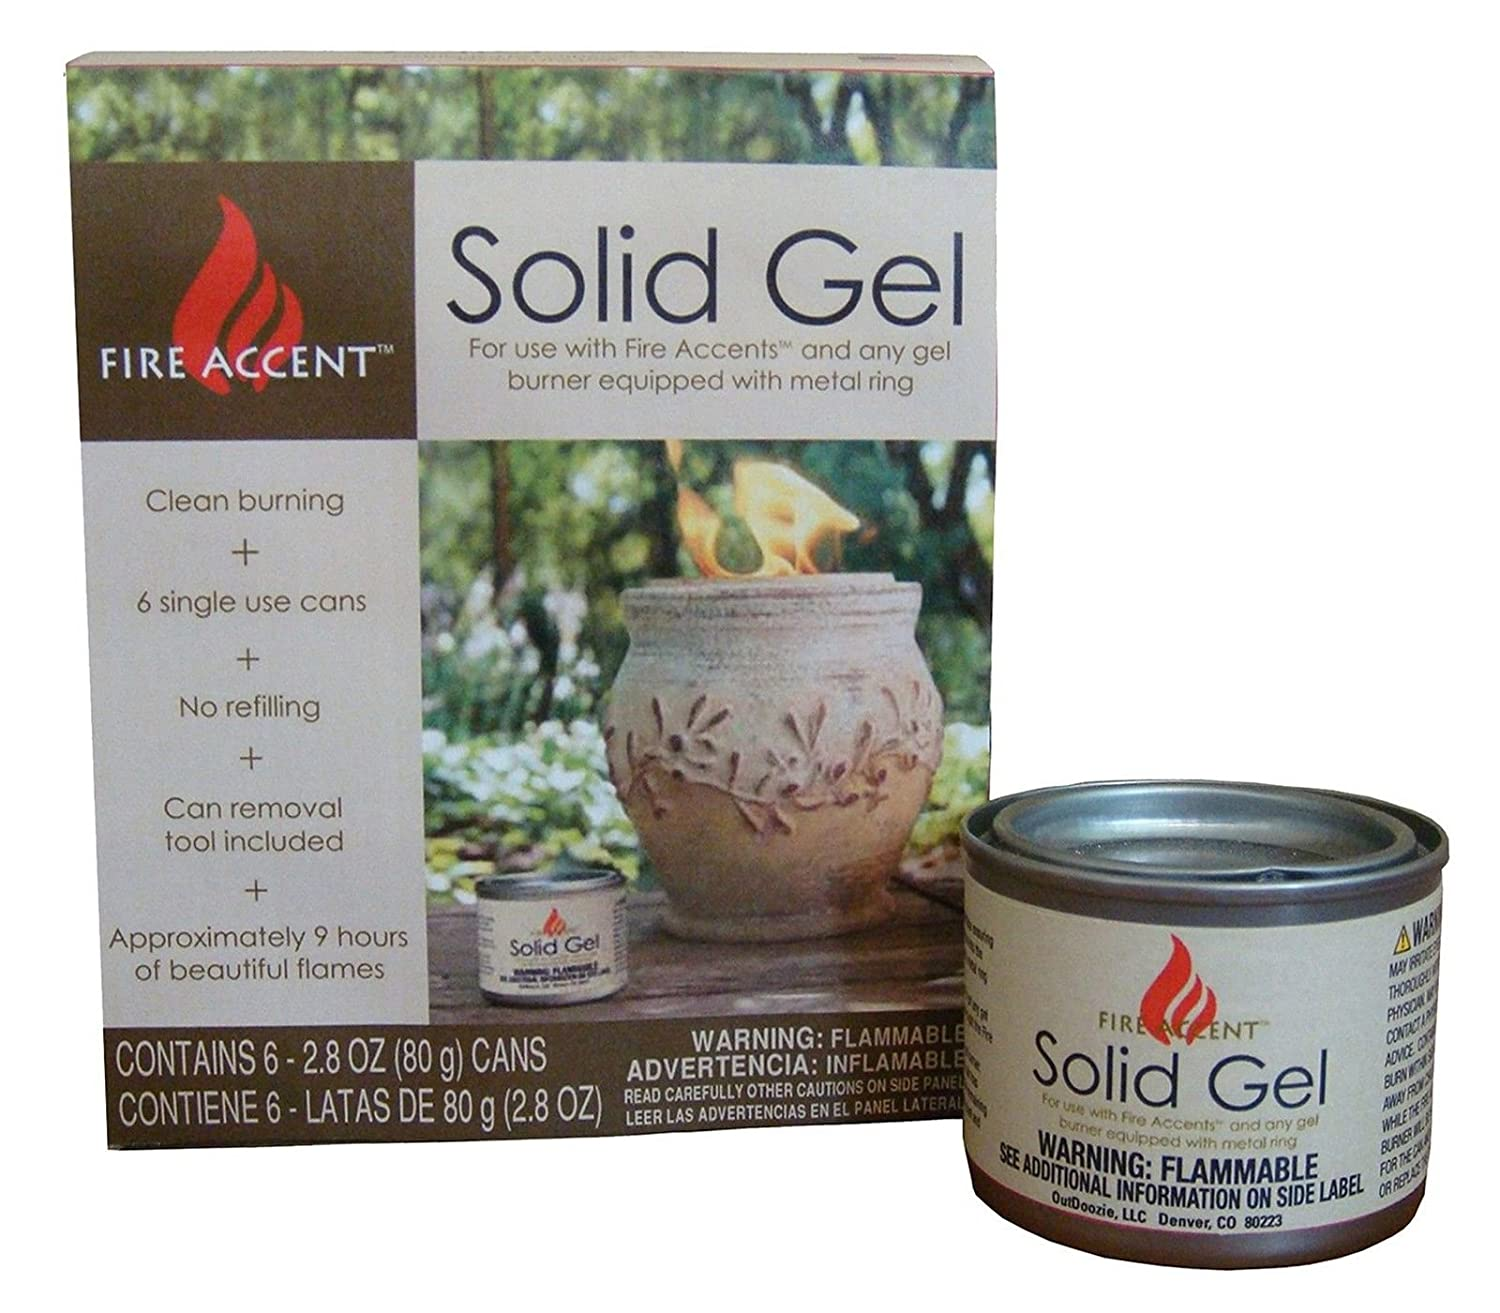 Amazon.com: Outdoozie Fire Accent Solid Gel Can (6 Pack) 2.8 oz .#GH45843 3468-T34562FD152512: Kitchen & Dining